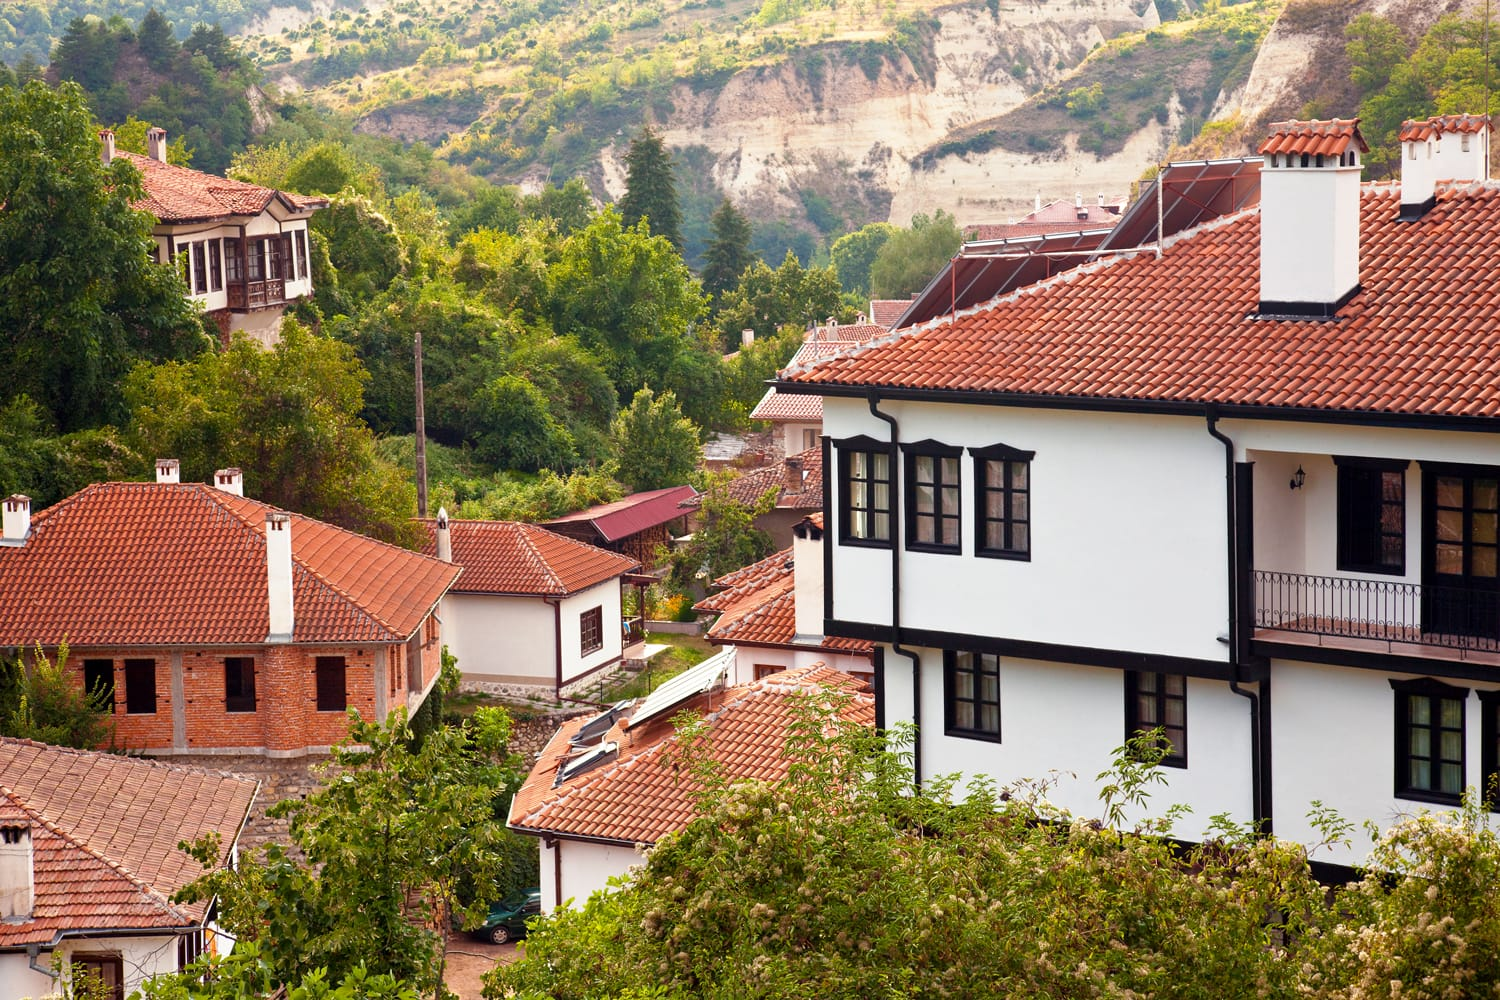 Top view of houses in historic Melnik, Bulgaria.